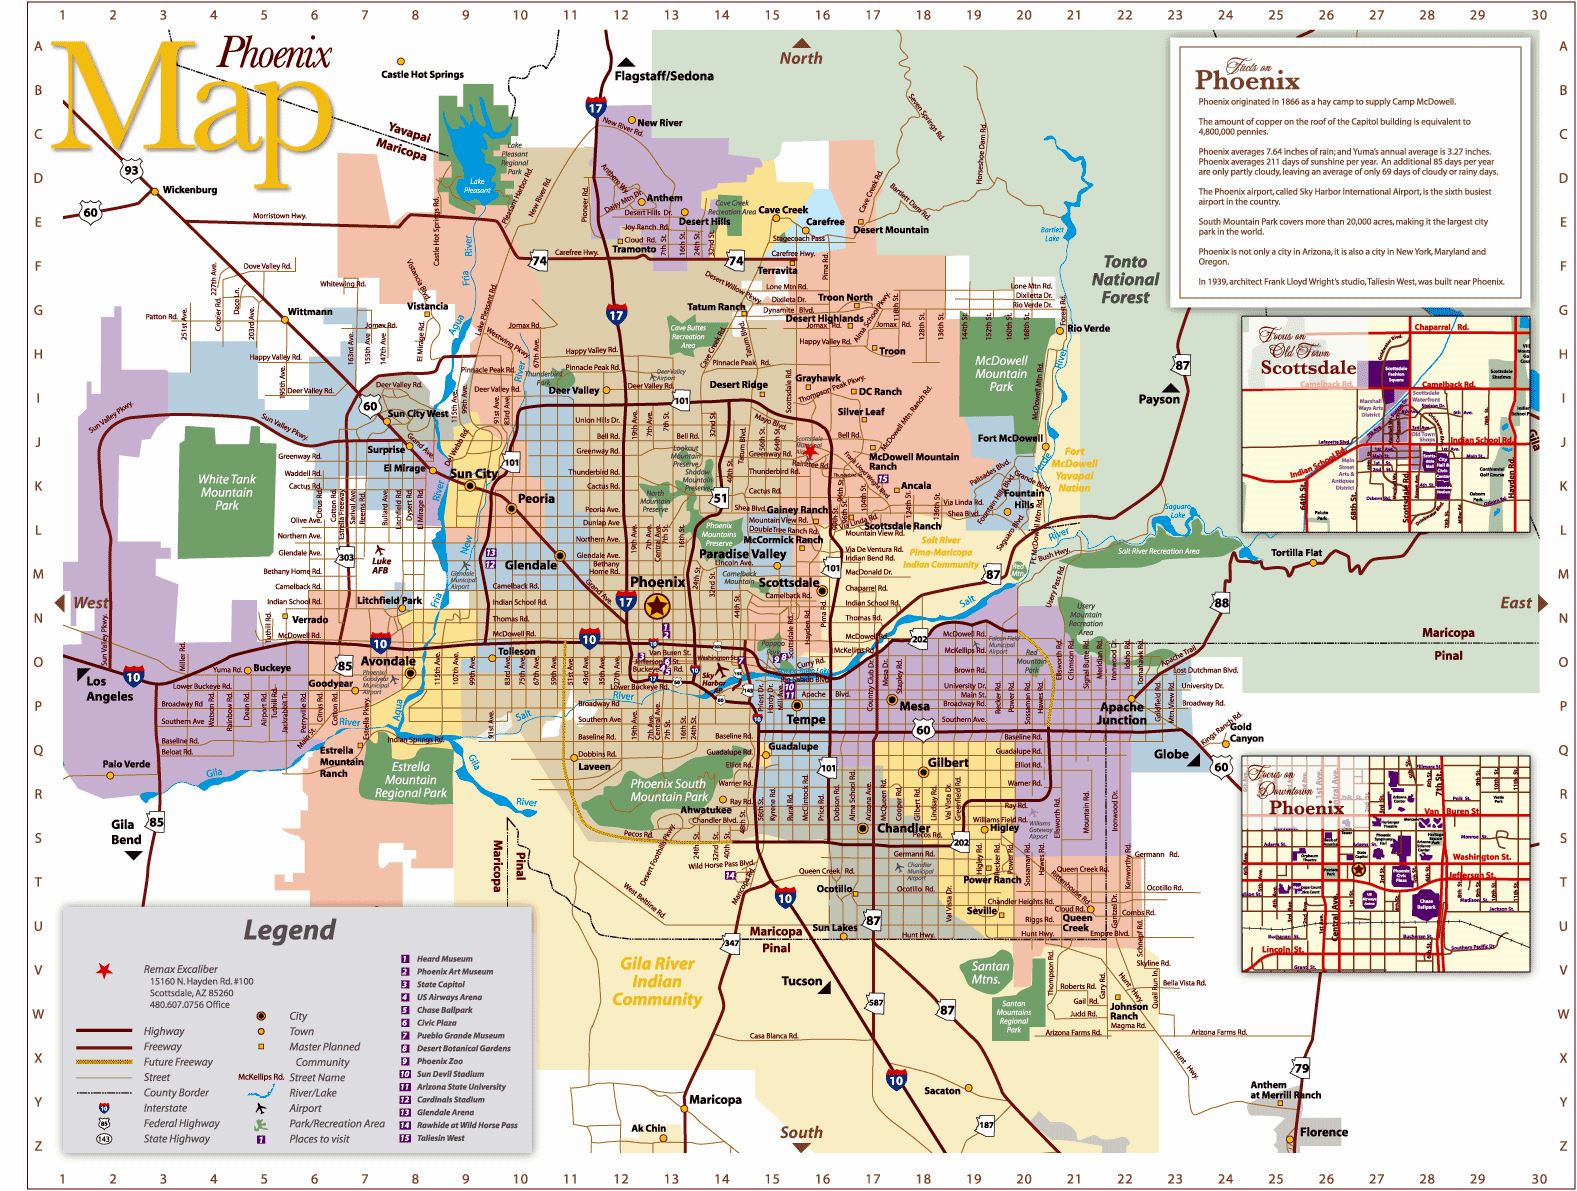 map of phoenix and surrounding area Large Phoenix Maps For Free Download And Print High Resolution map of phoenix and surrounding area